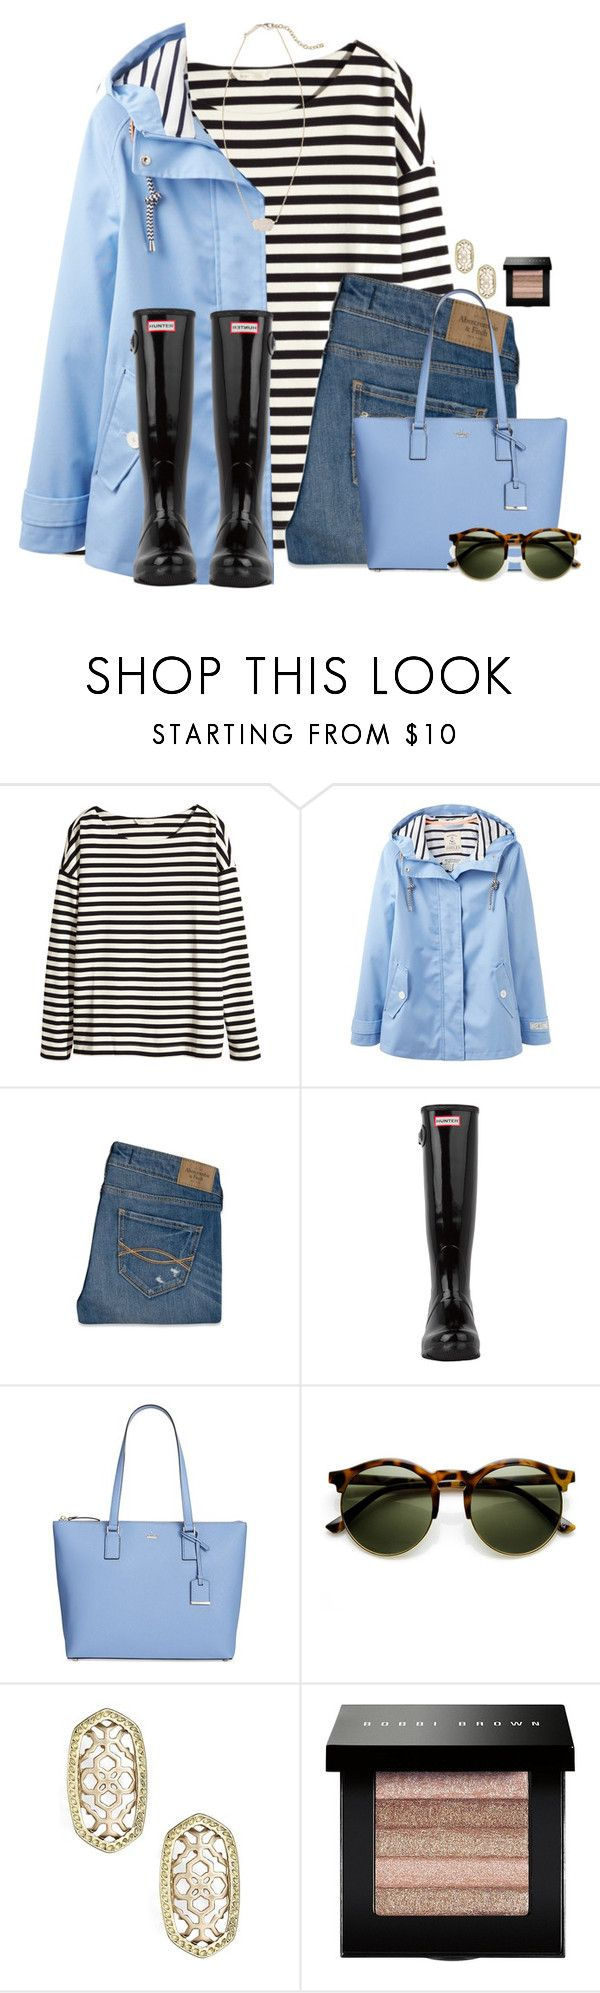 """""""~after the rain theres always a rainbow~"""" by flroasburn on Polyvore featuring H&M, Joules, Abercrombie & Fitch, Hunter, Kate Spade, Kendra Scott and Bobbi Brown Cosmetics"""